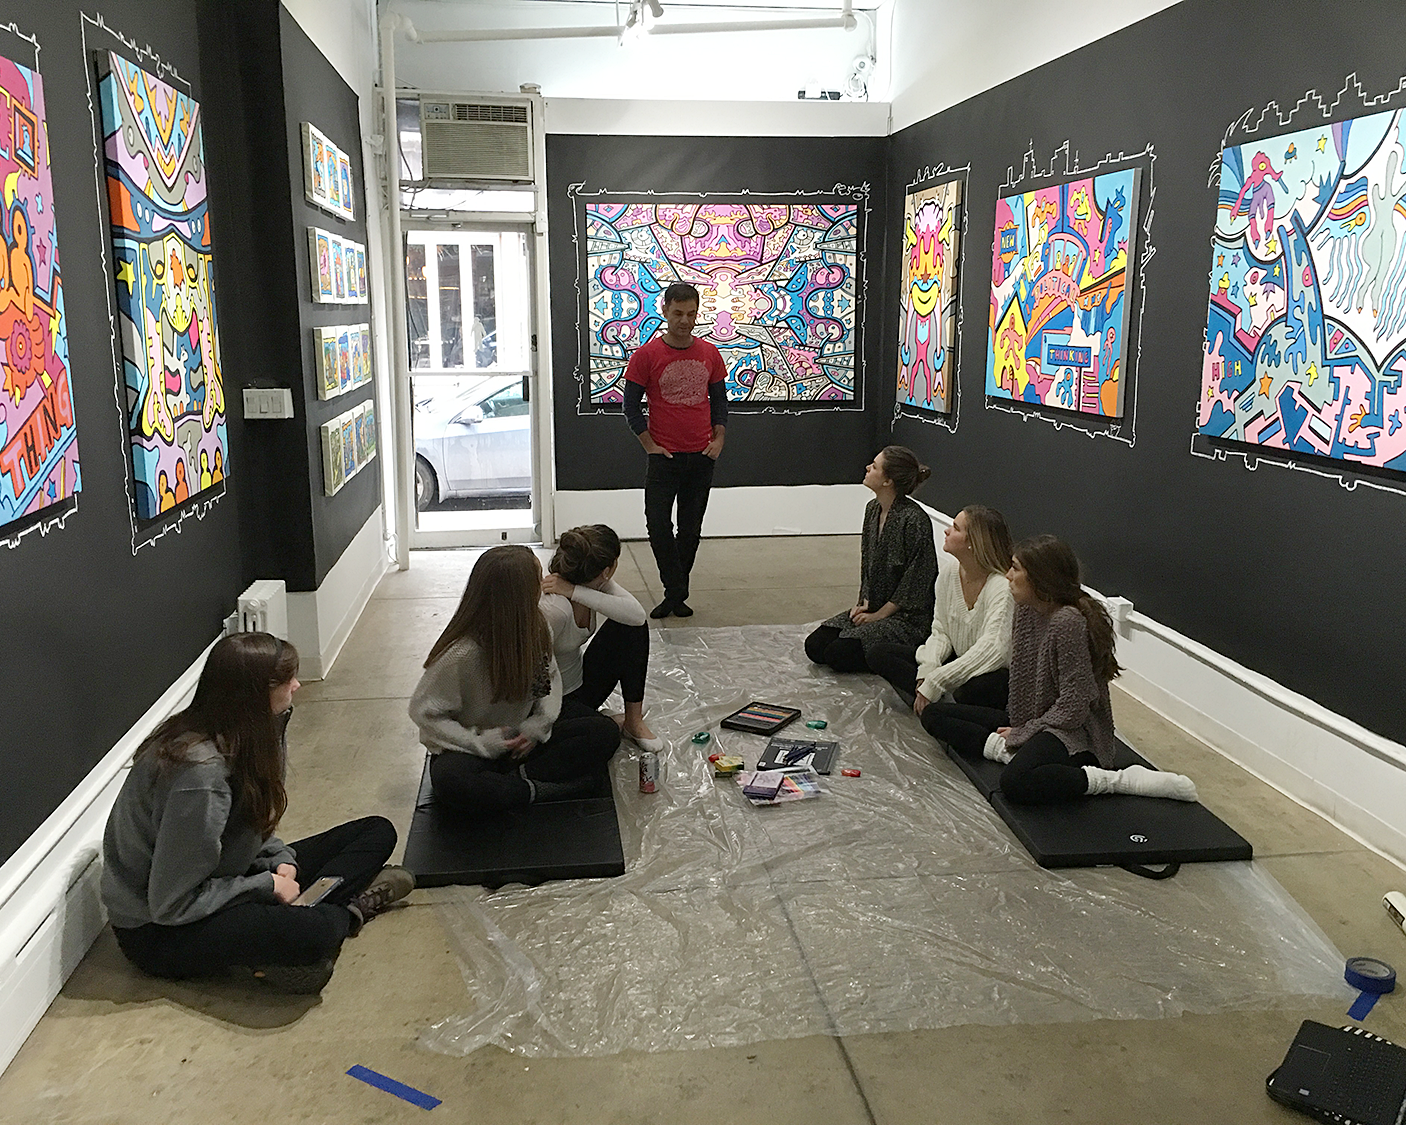 Psychedelic artist Chriss Reddy during a workshop at Filo Sofi Arts in NYC